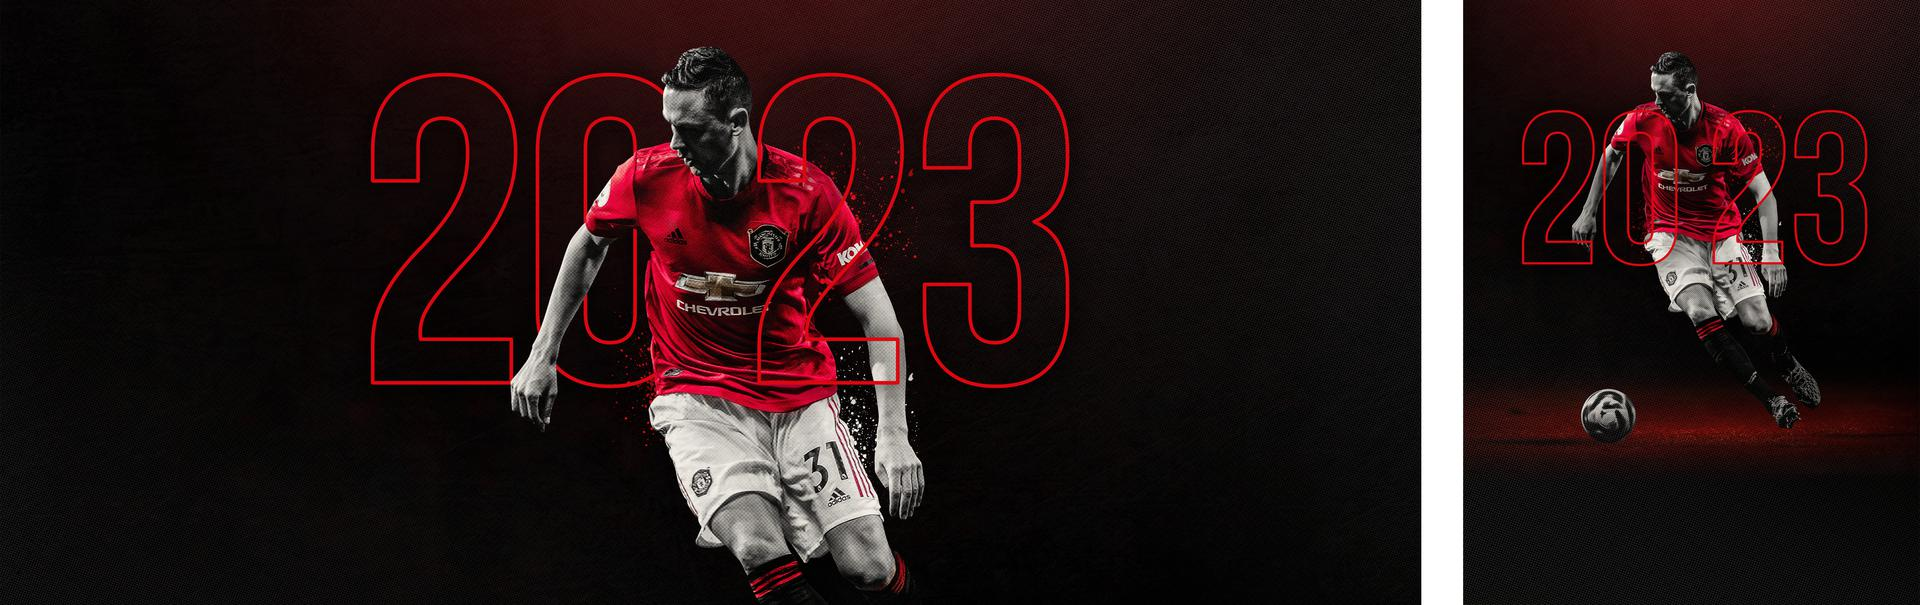 Promotional graphic marking Nemanja Matic's new Manchester United contract announcement to June 2023,